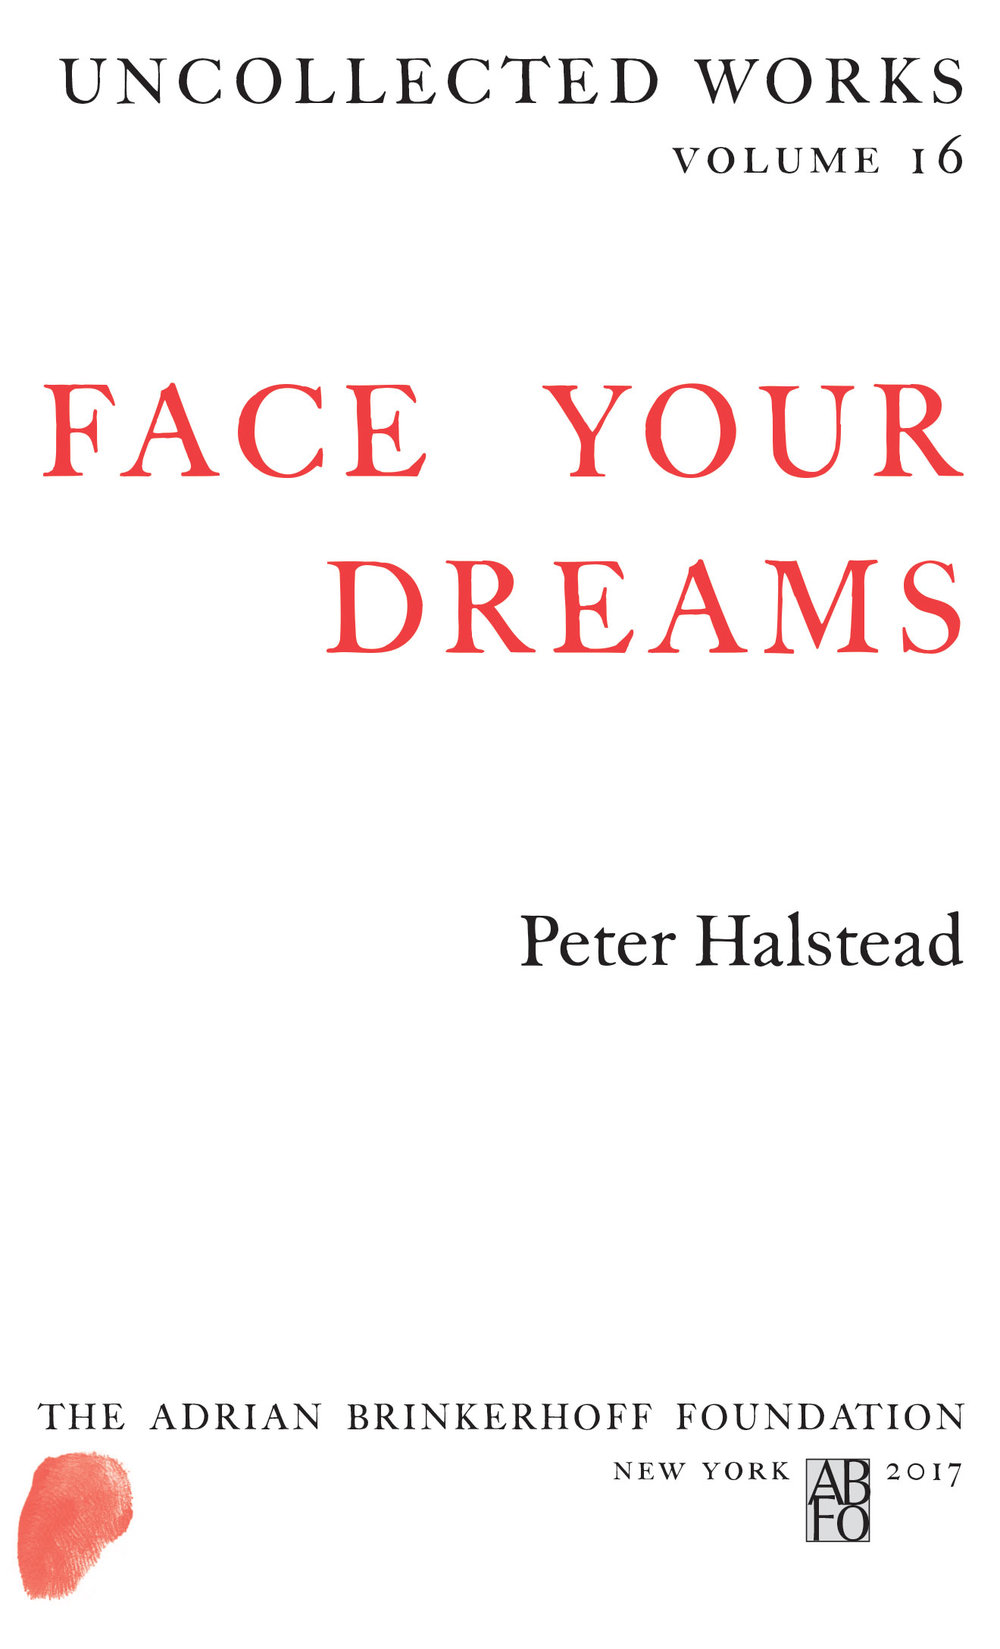 Title_Page_Face-Your-Dreams-Vol-16_1320x2177.jpg